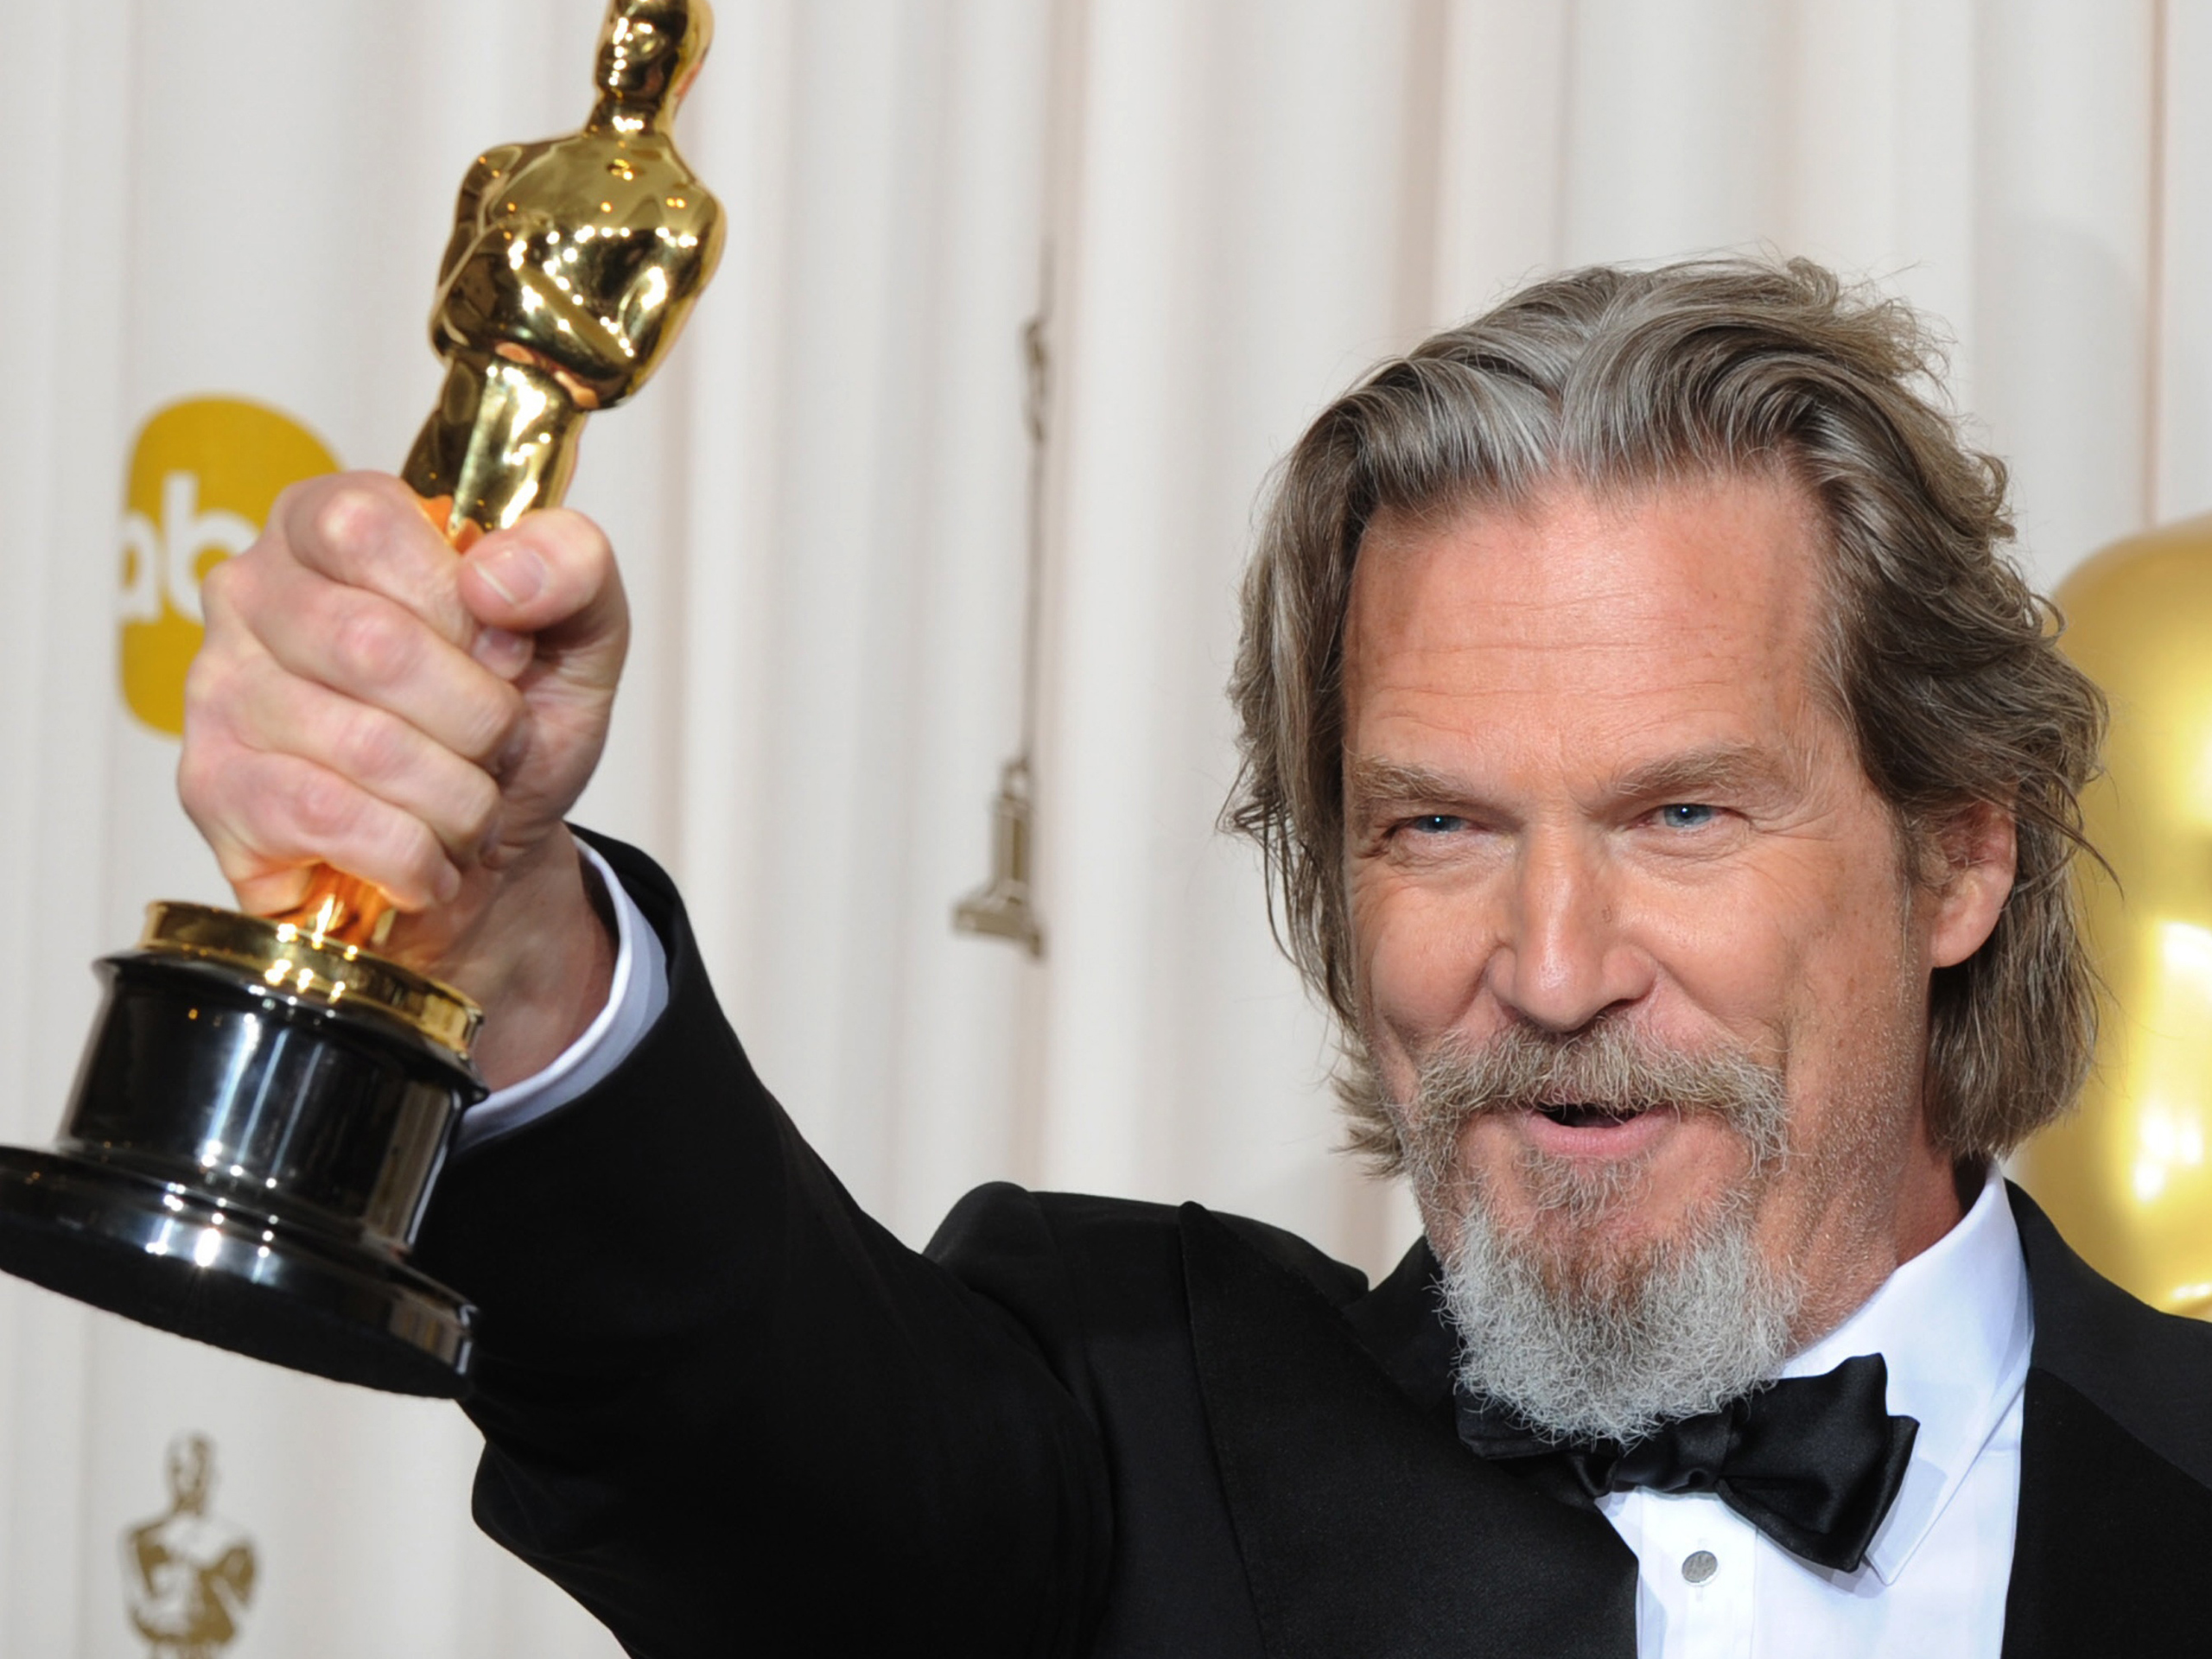 We heard a little less than a month ago that Jeff Bridges was close to signing on for R.I.P.D. He'd be replacing Zack Galifianakis in a role that puts him ...